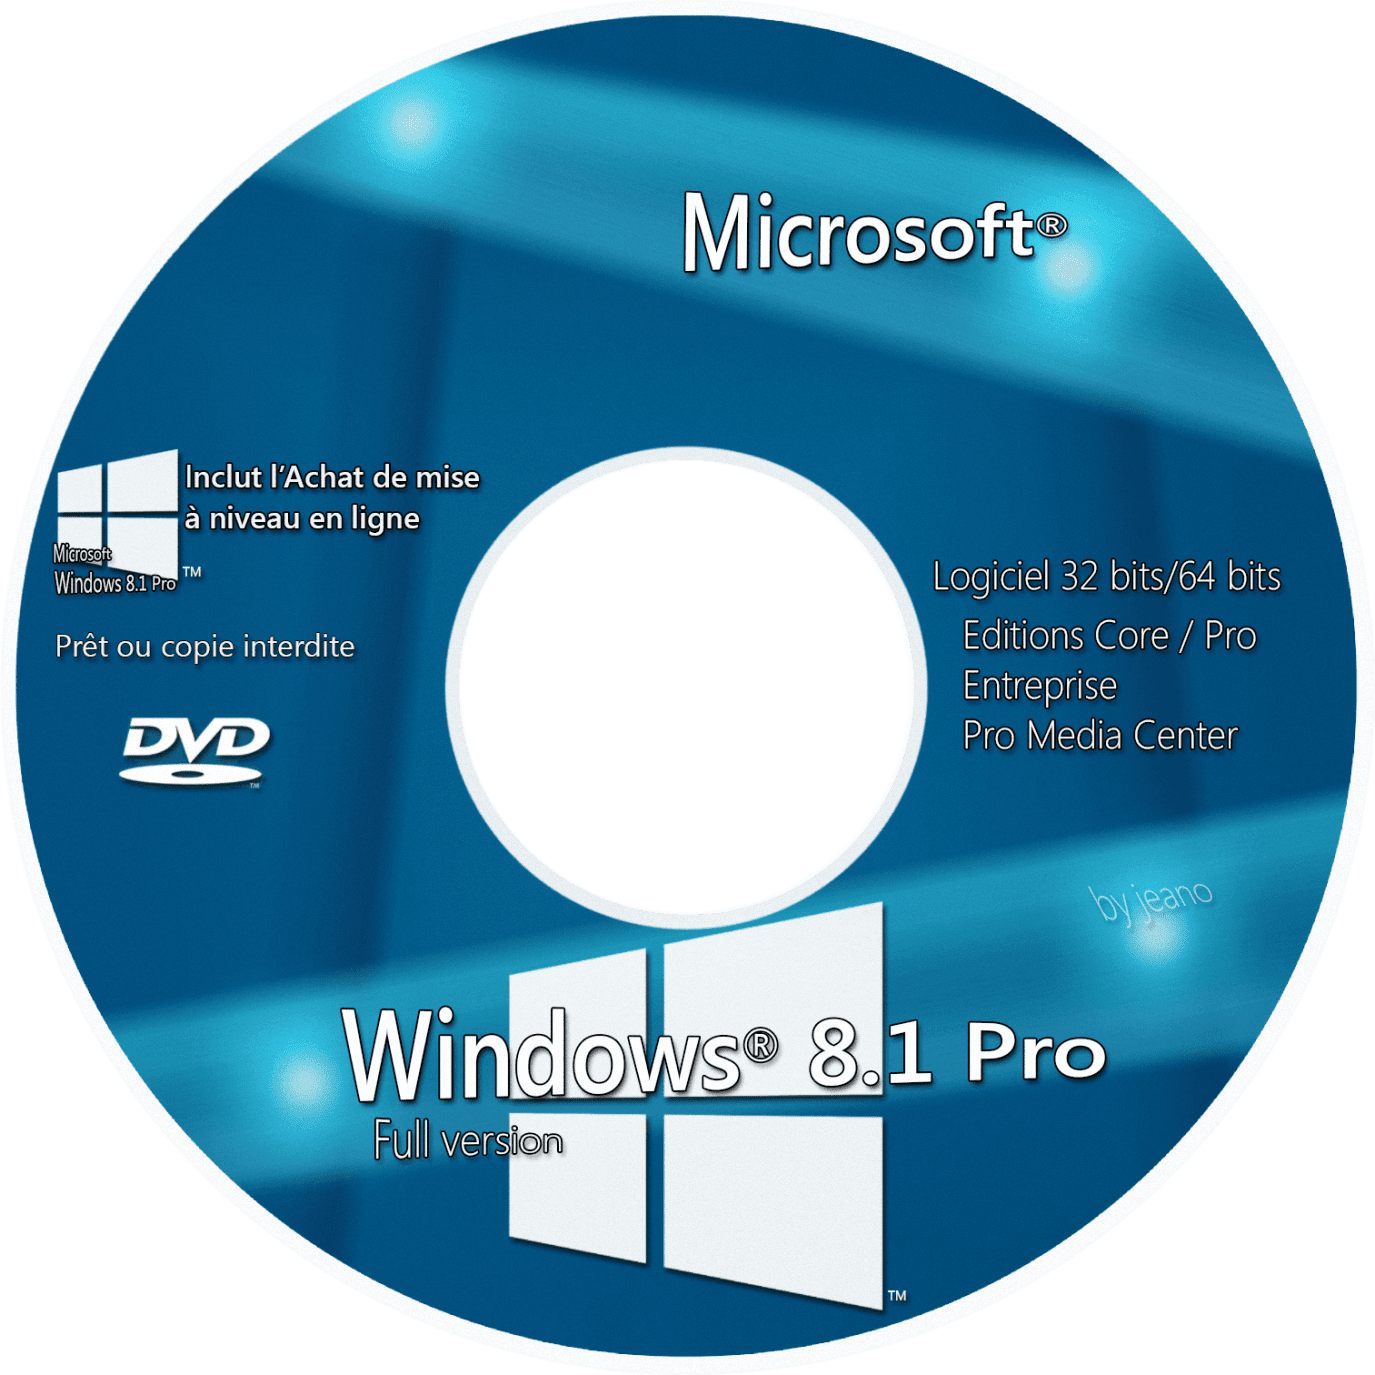 How to play DVDs in Windows 8